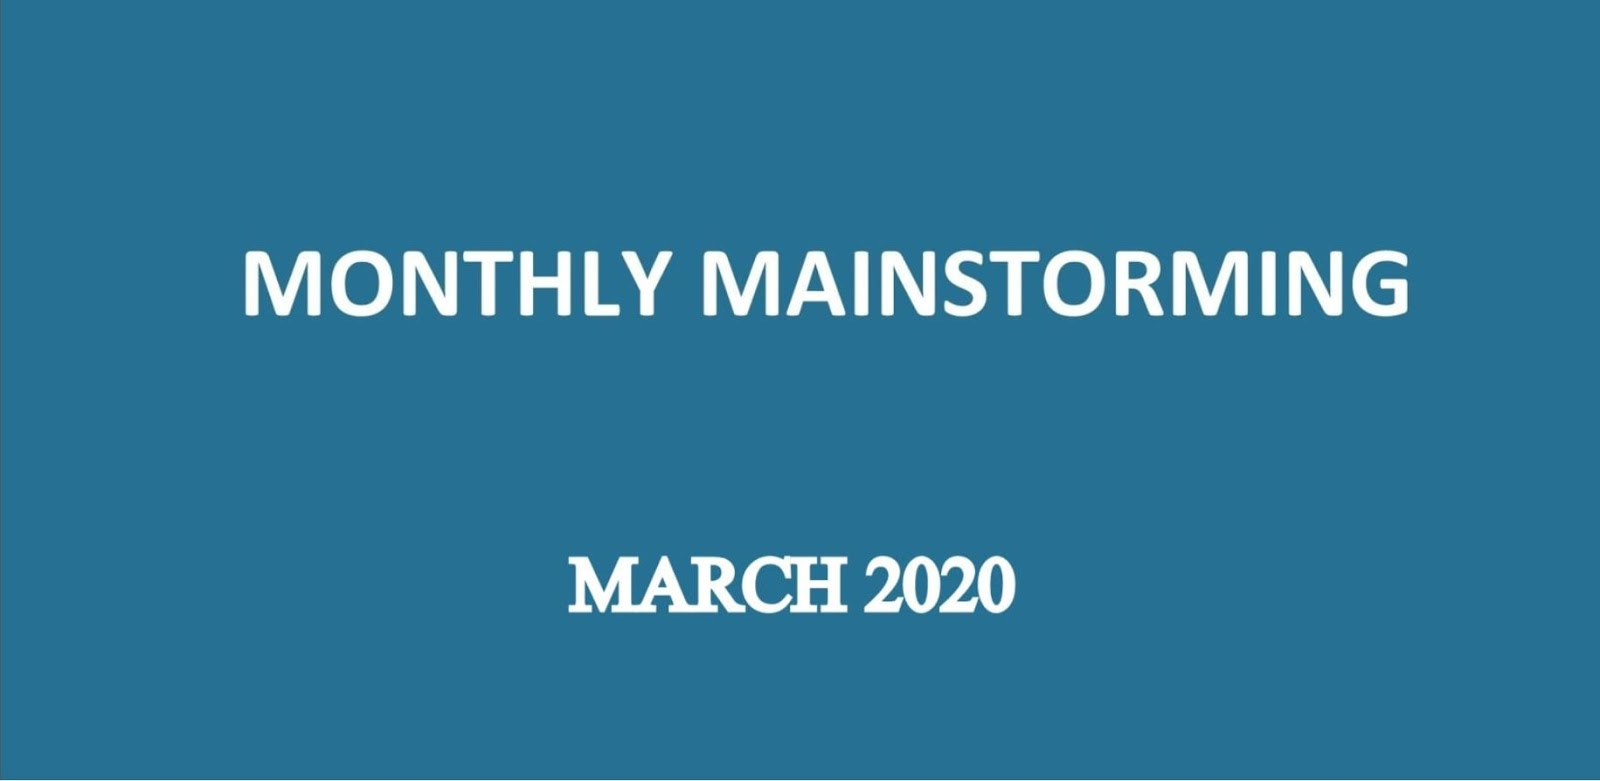 UPSC Mainstorming March 2020